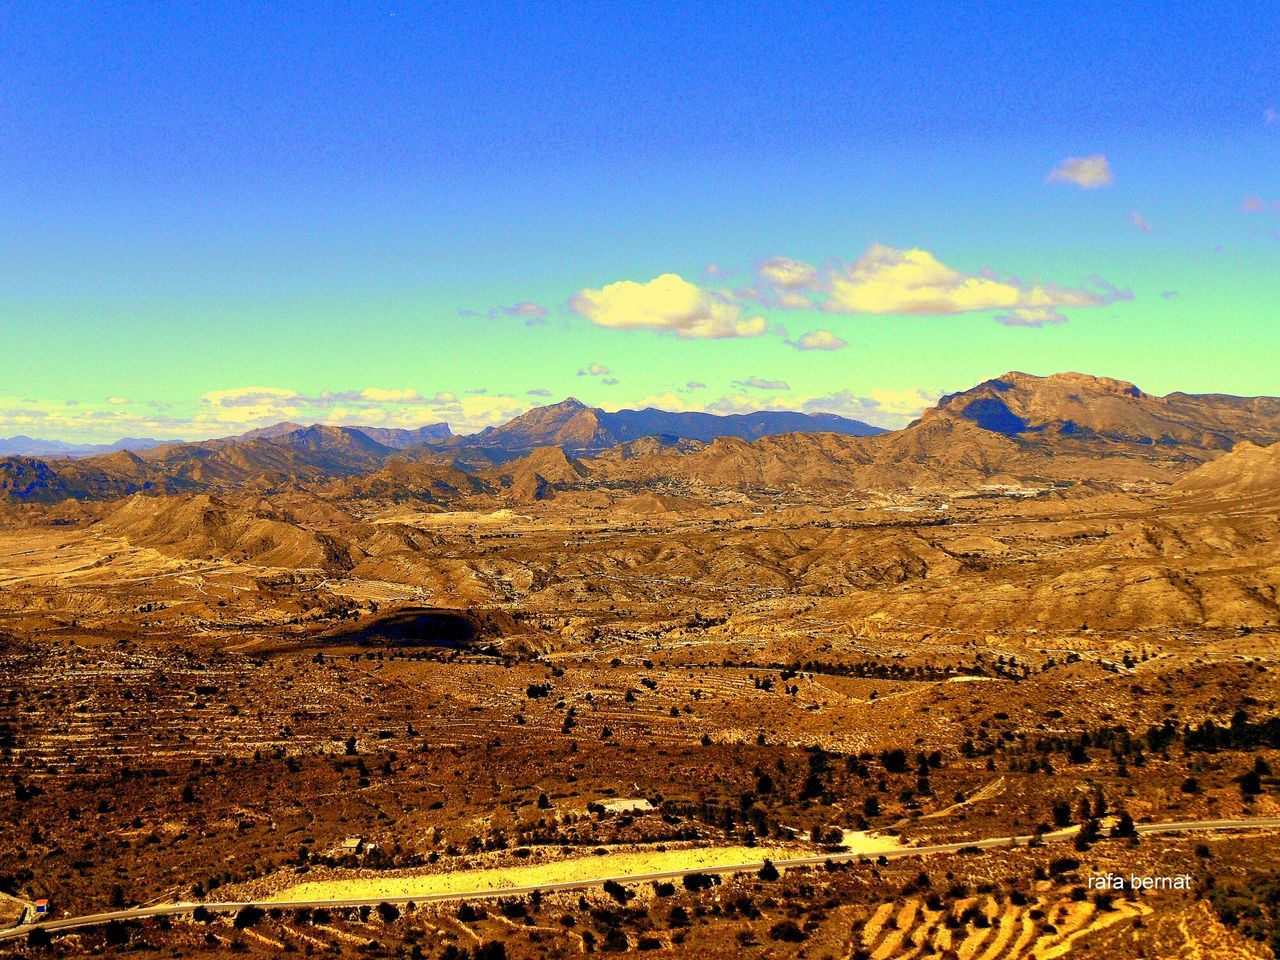 mountain, nature, beauty in nature, scenics, landscape, tranquil scene, tranquility, mountain range, outdoors, no people, day, physical geography, sky, arid climate